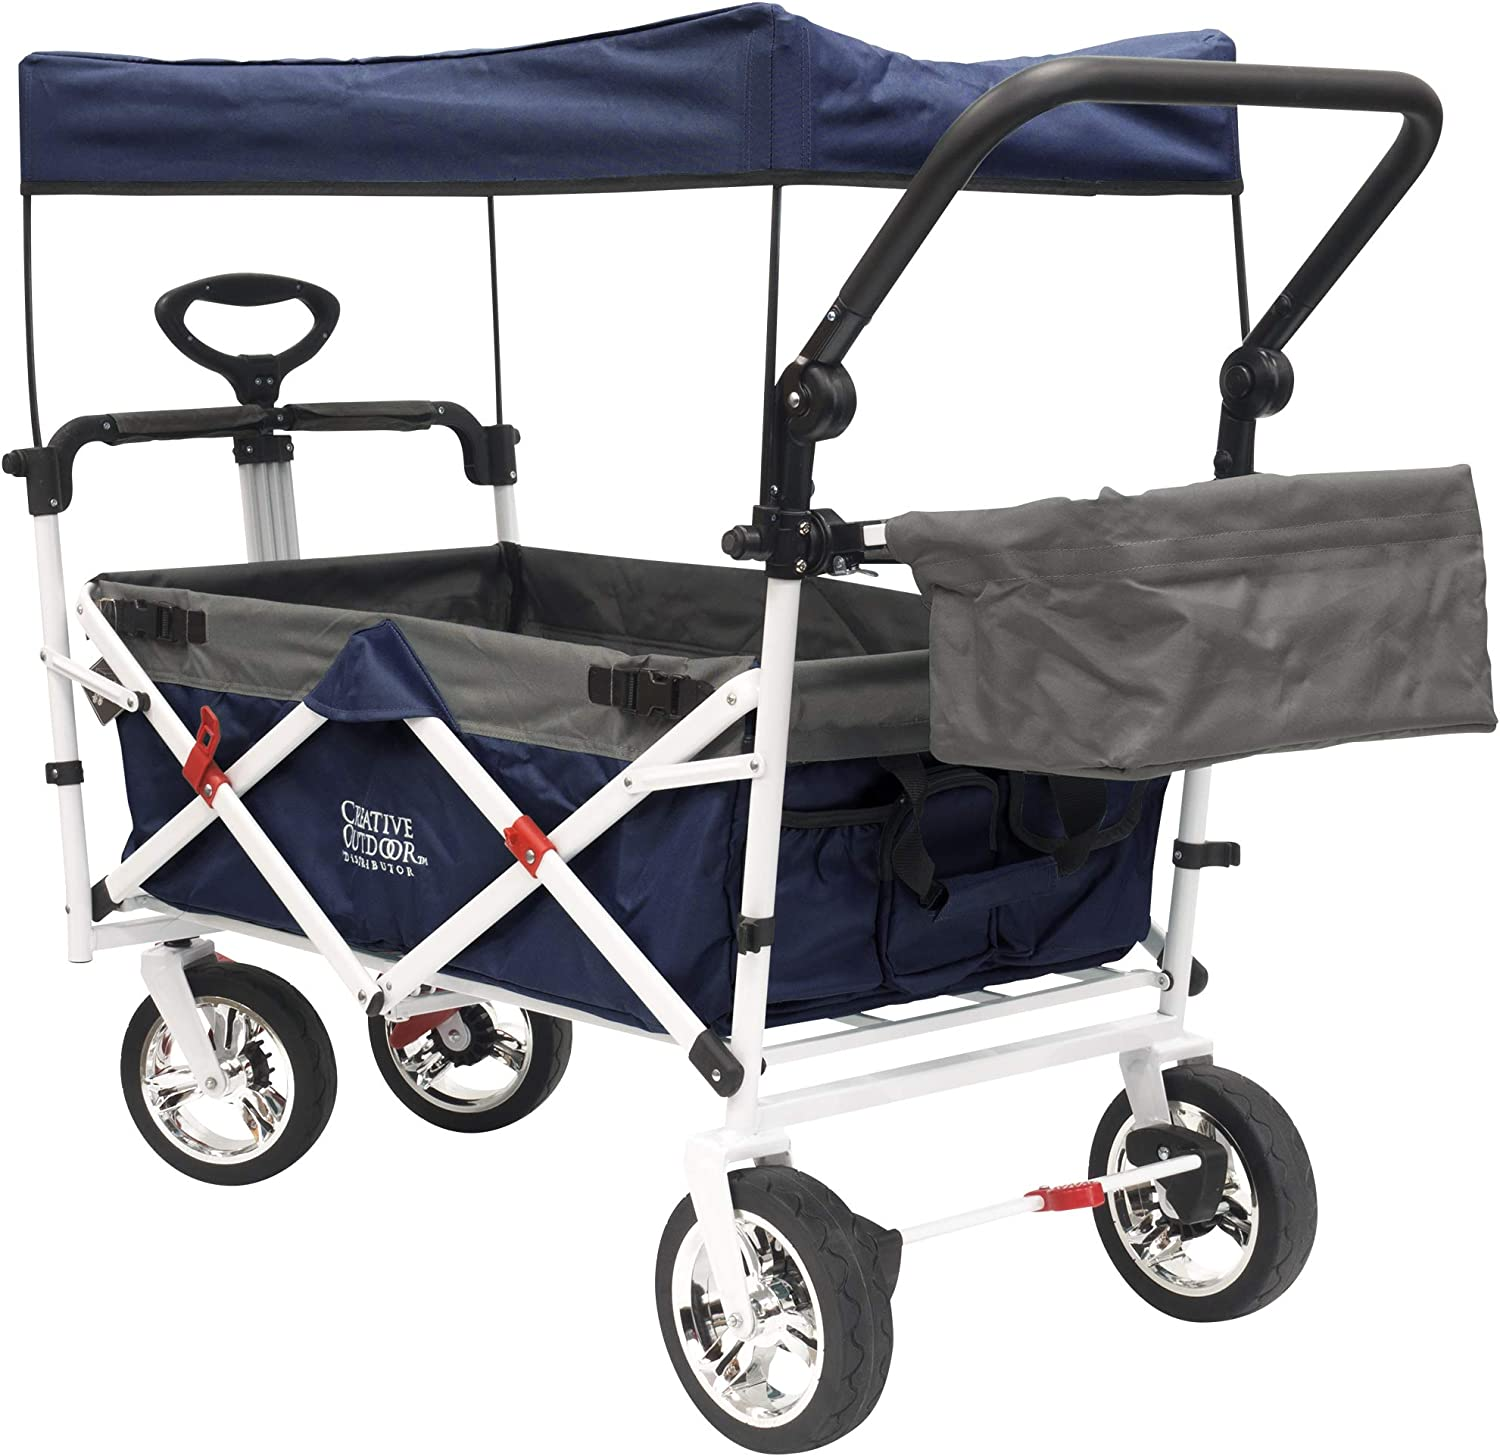 Creative Outdoor Push-Pull Collapsible Folding Wagon